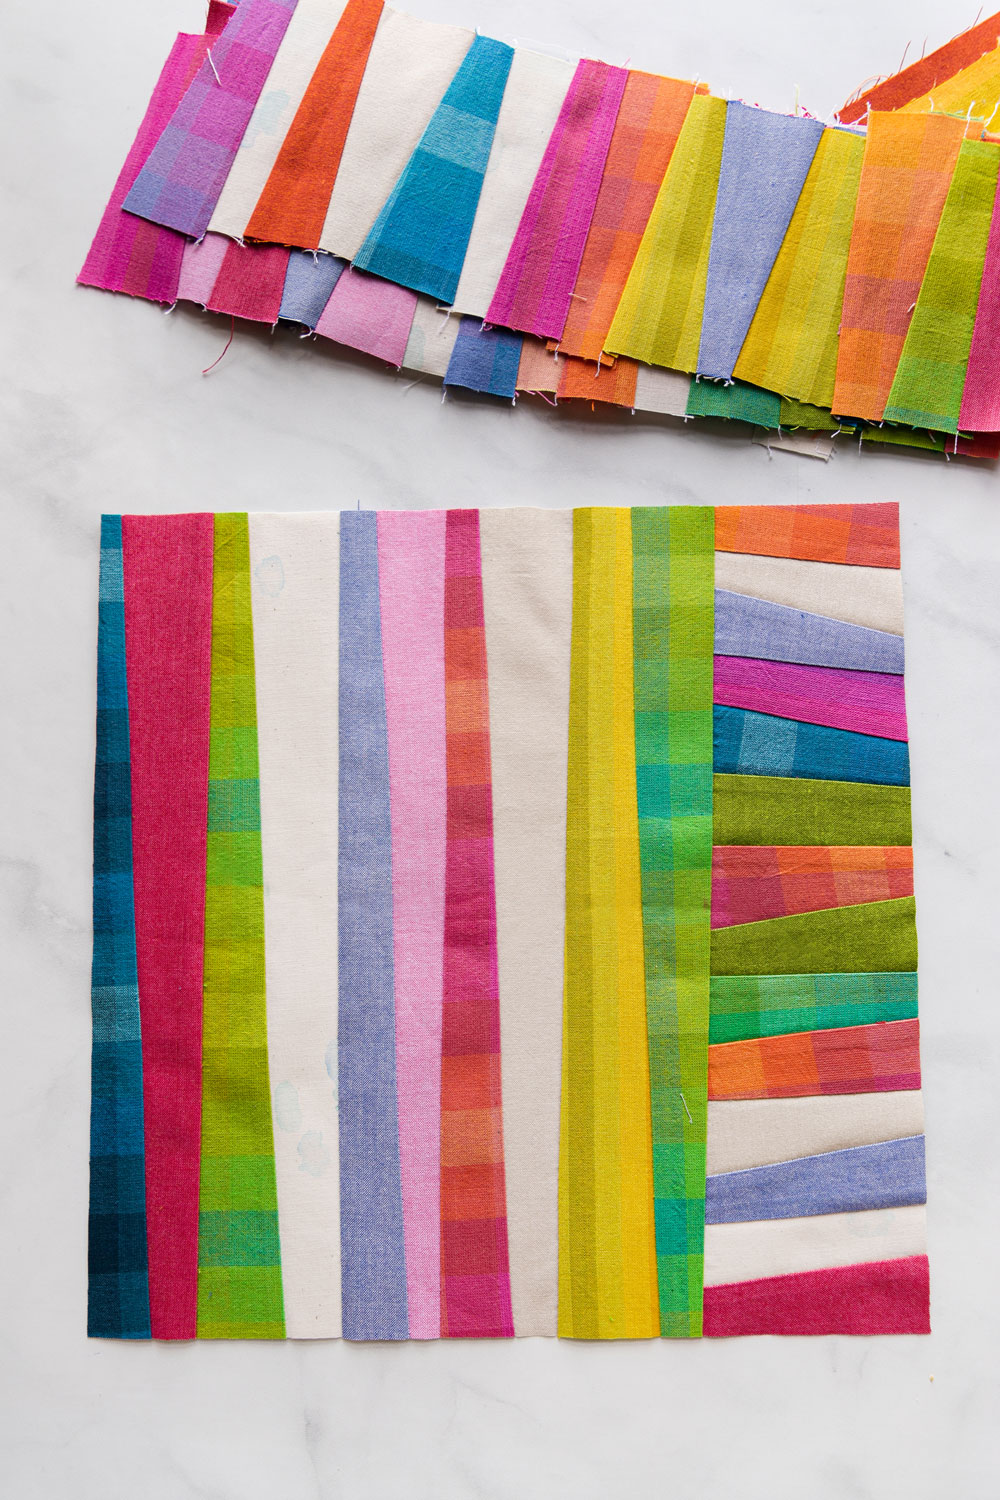 The Shine quilt sew along includes lots of added tips and videos to help you make this modern quilt pattern. This fat quarter quilt pattern is beginner friendly and focuses on improv sewing. suzyquilts.com #fatquarterquilt #improvquilt